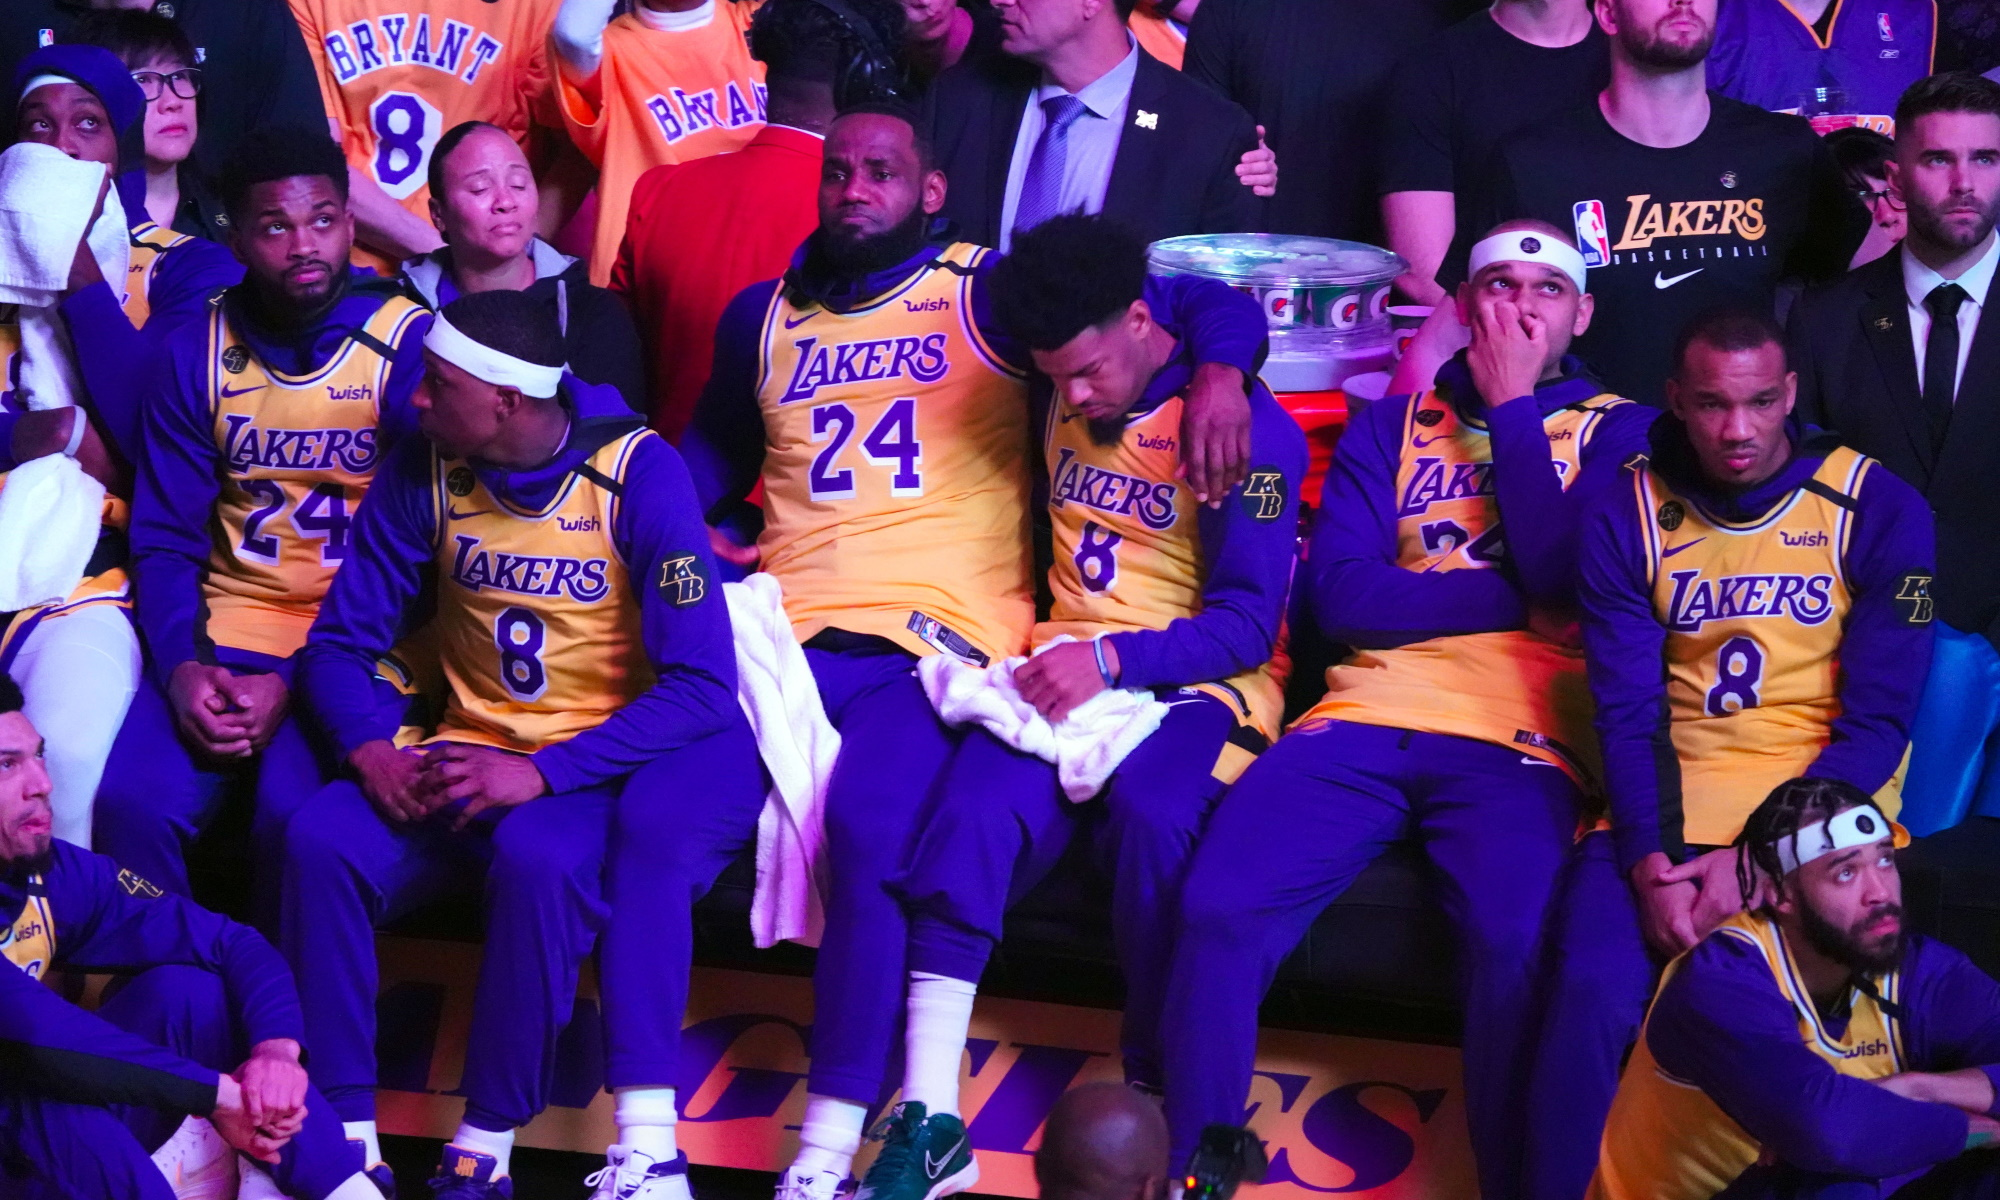 LeBron James and his Lakers teammates